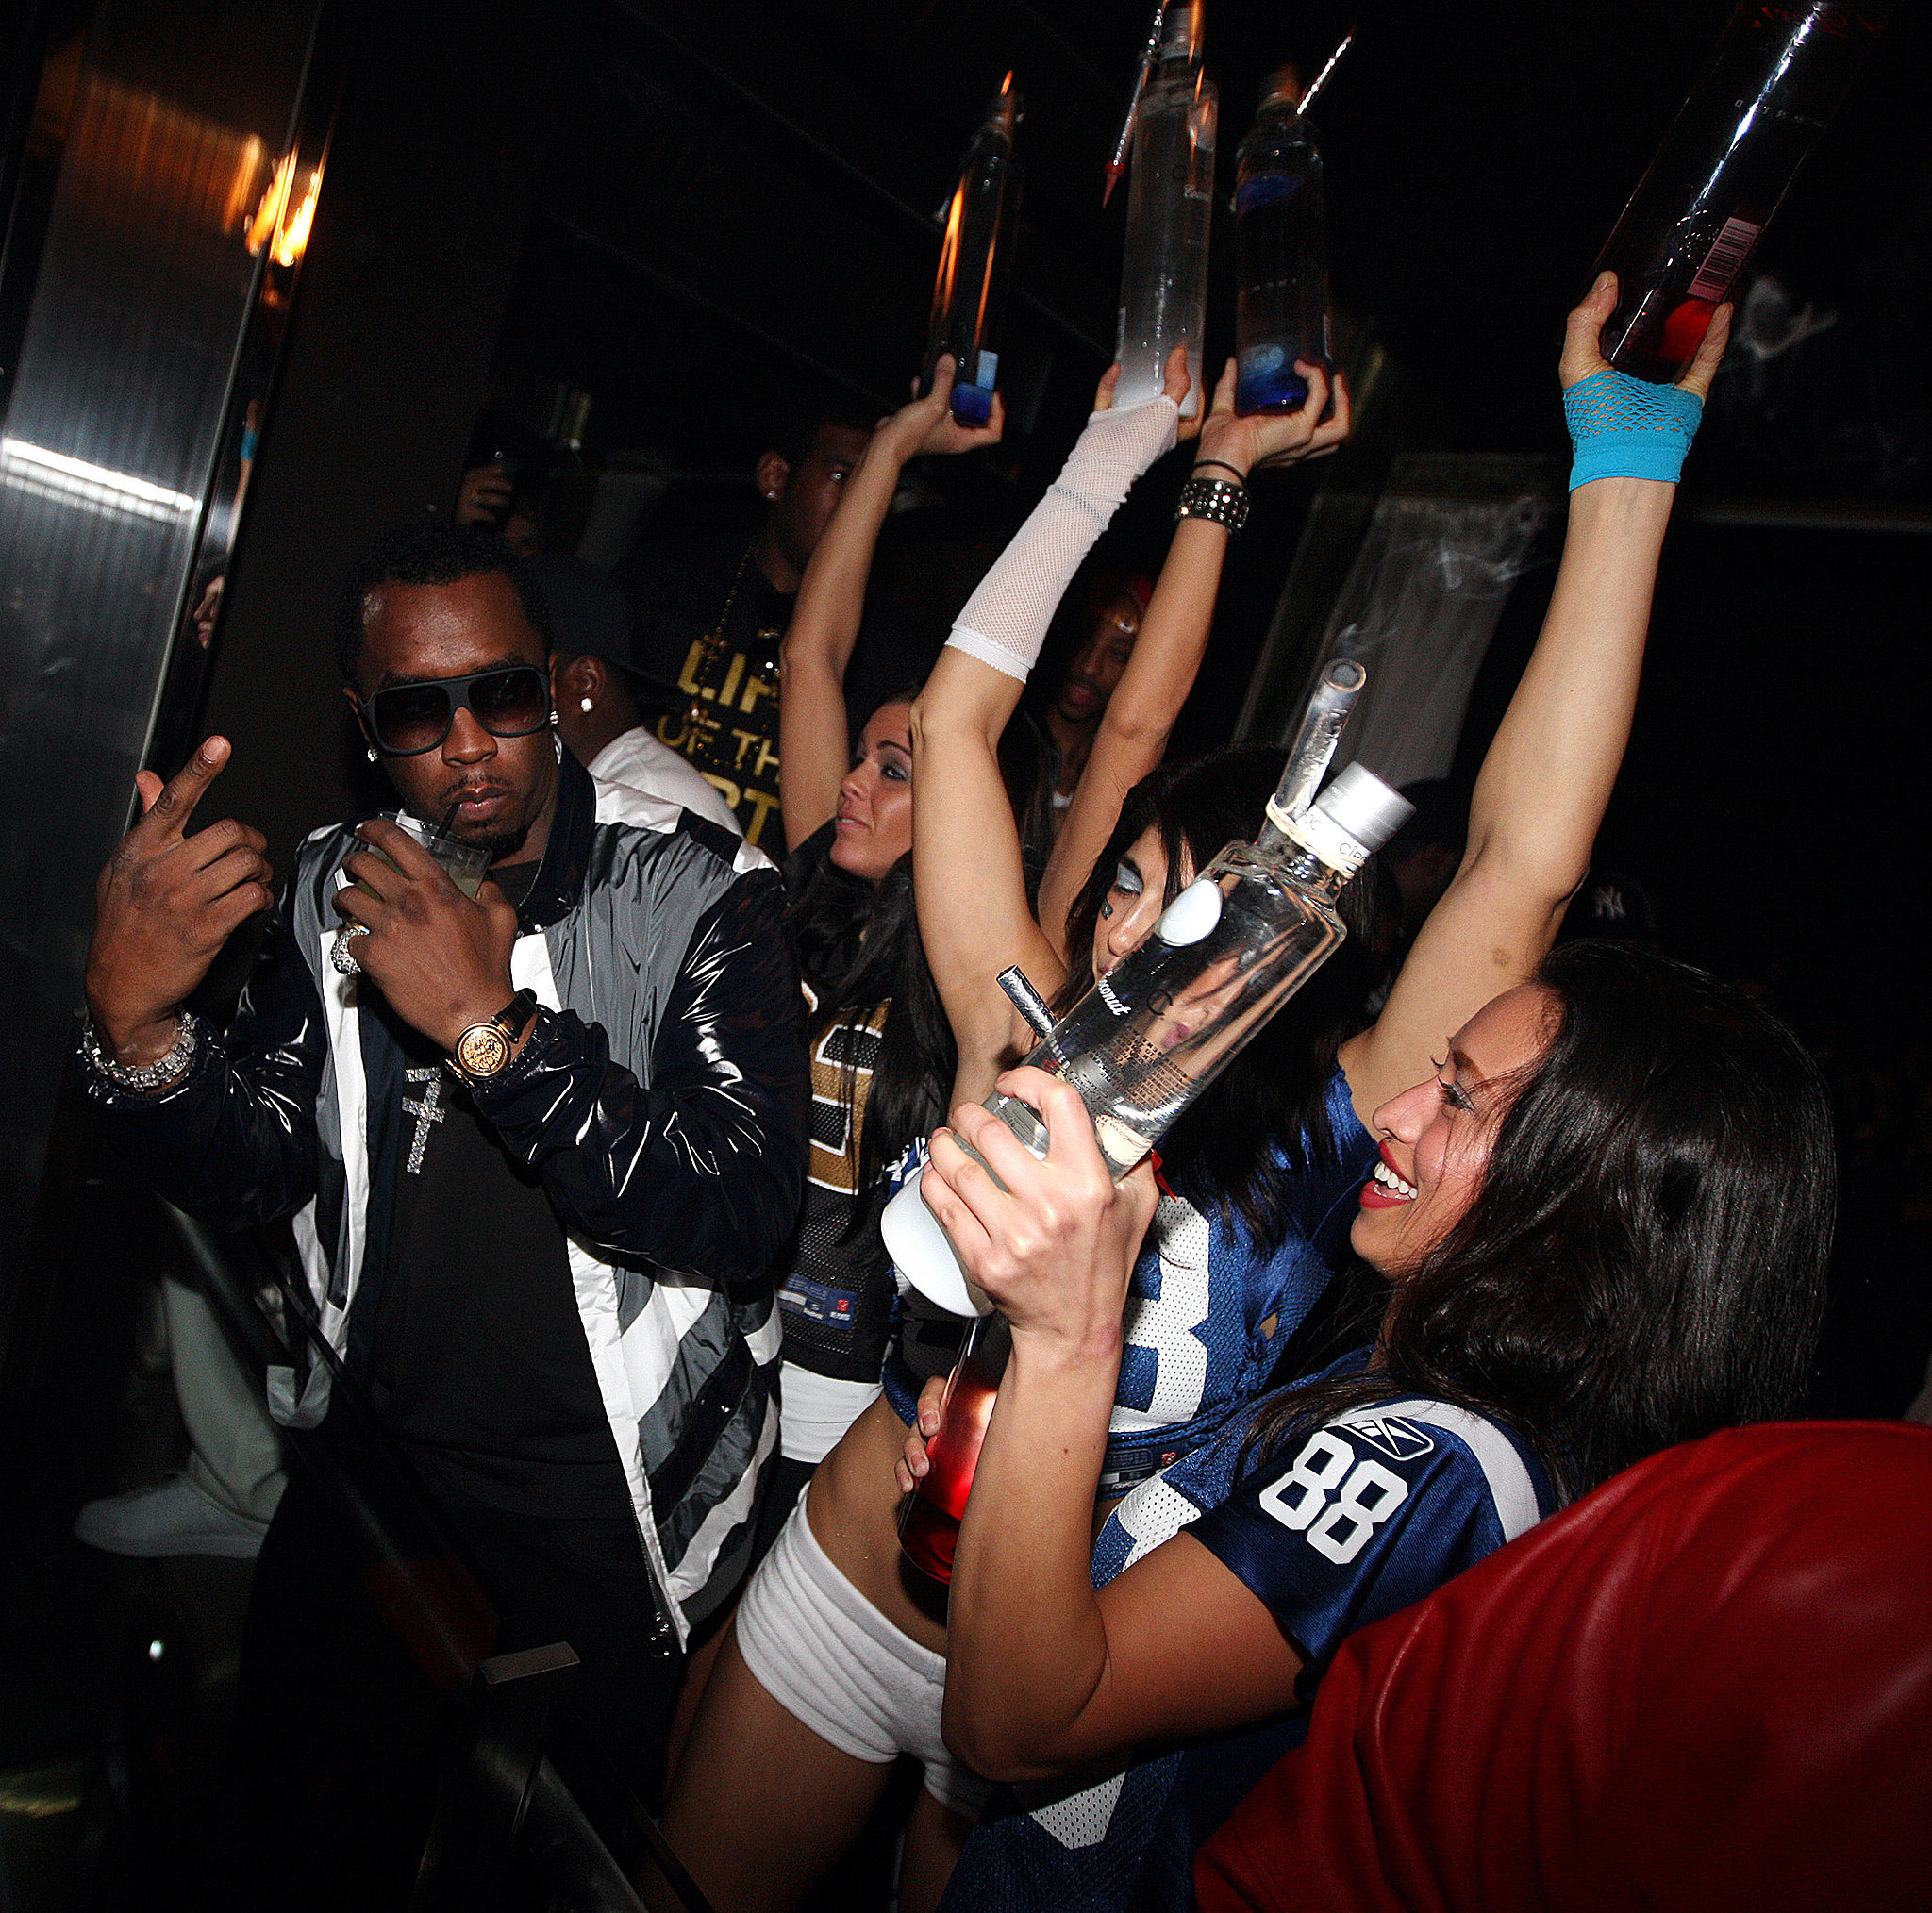 P. Diddy proved nobody throws a party like he does at the Axe Lounge in Miami after the Super Bowl in 2010.